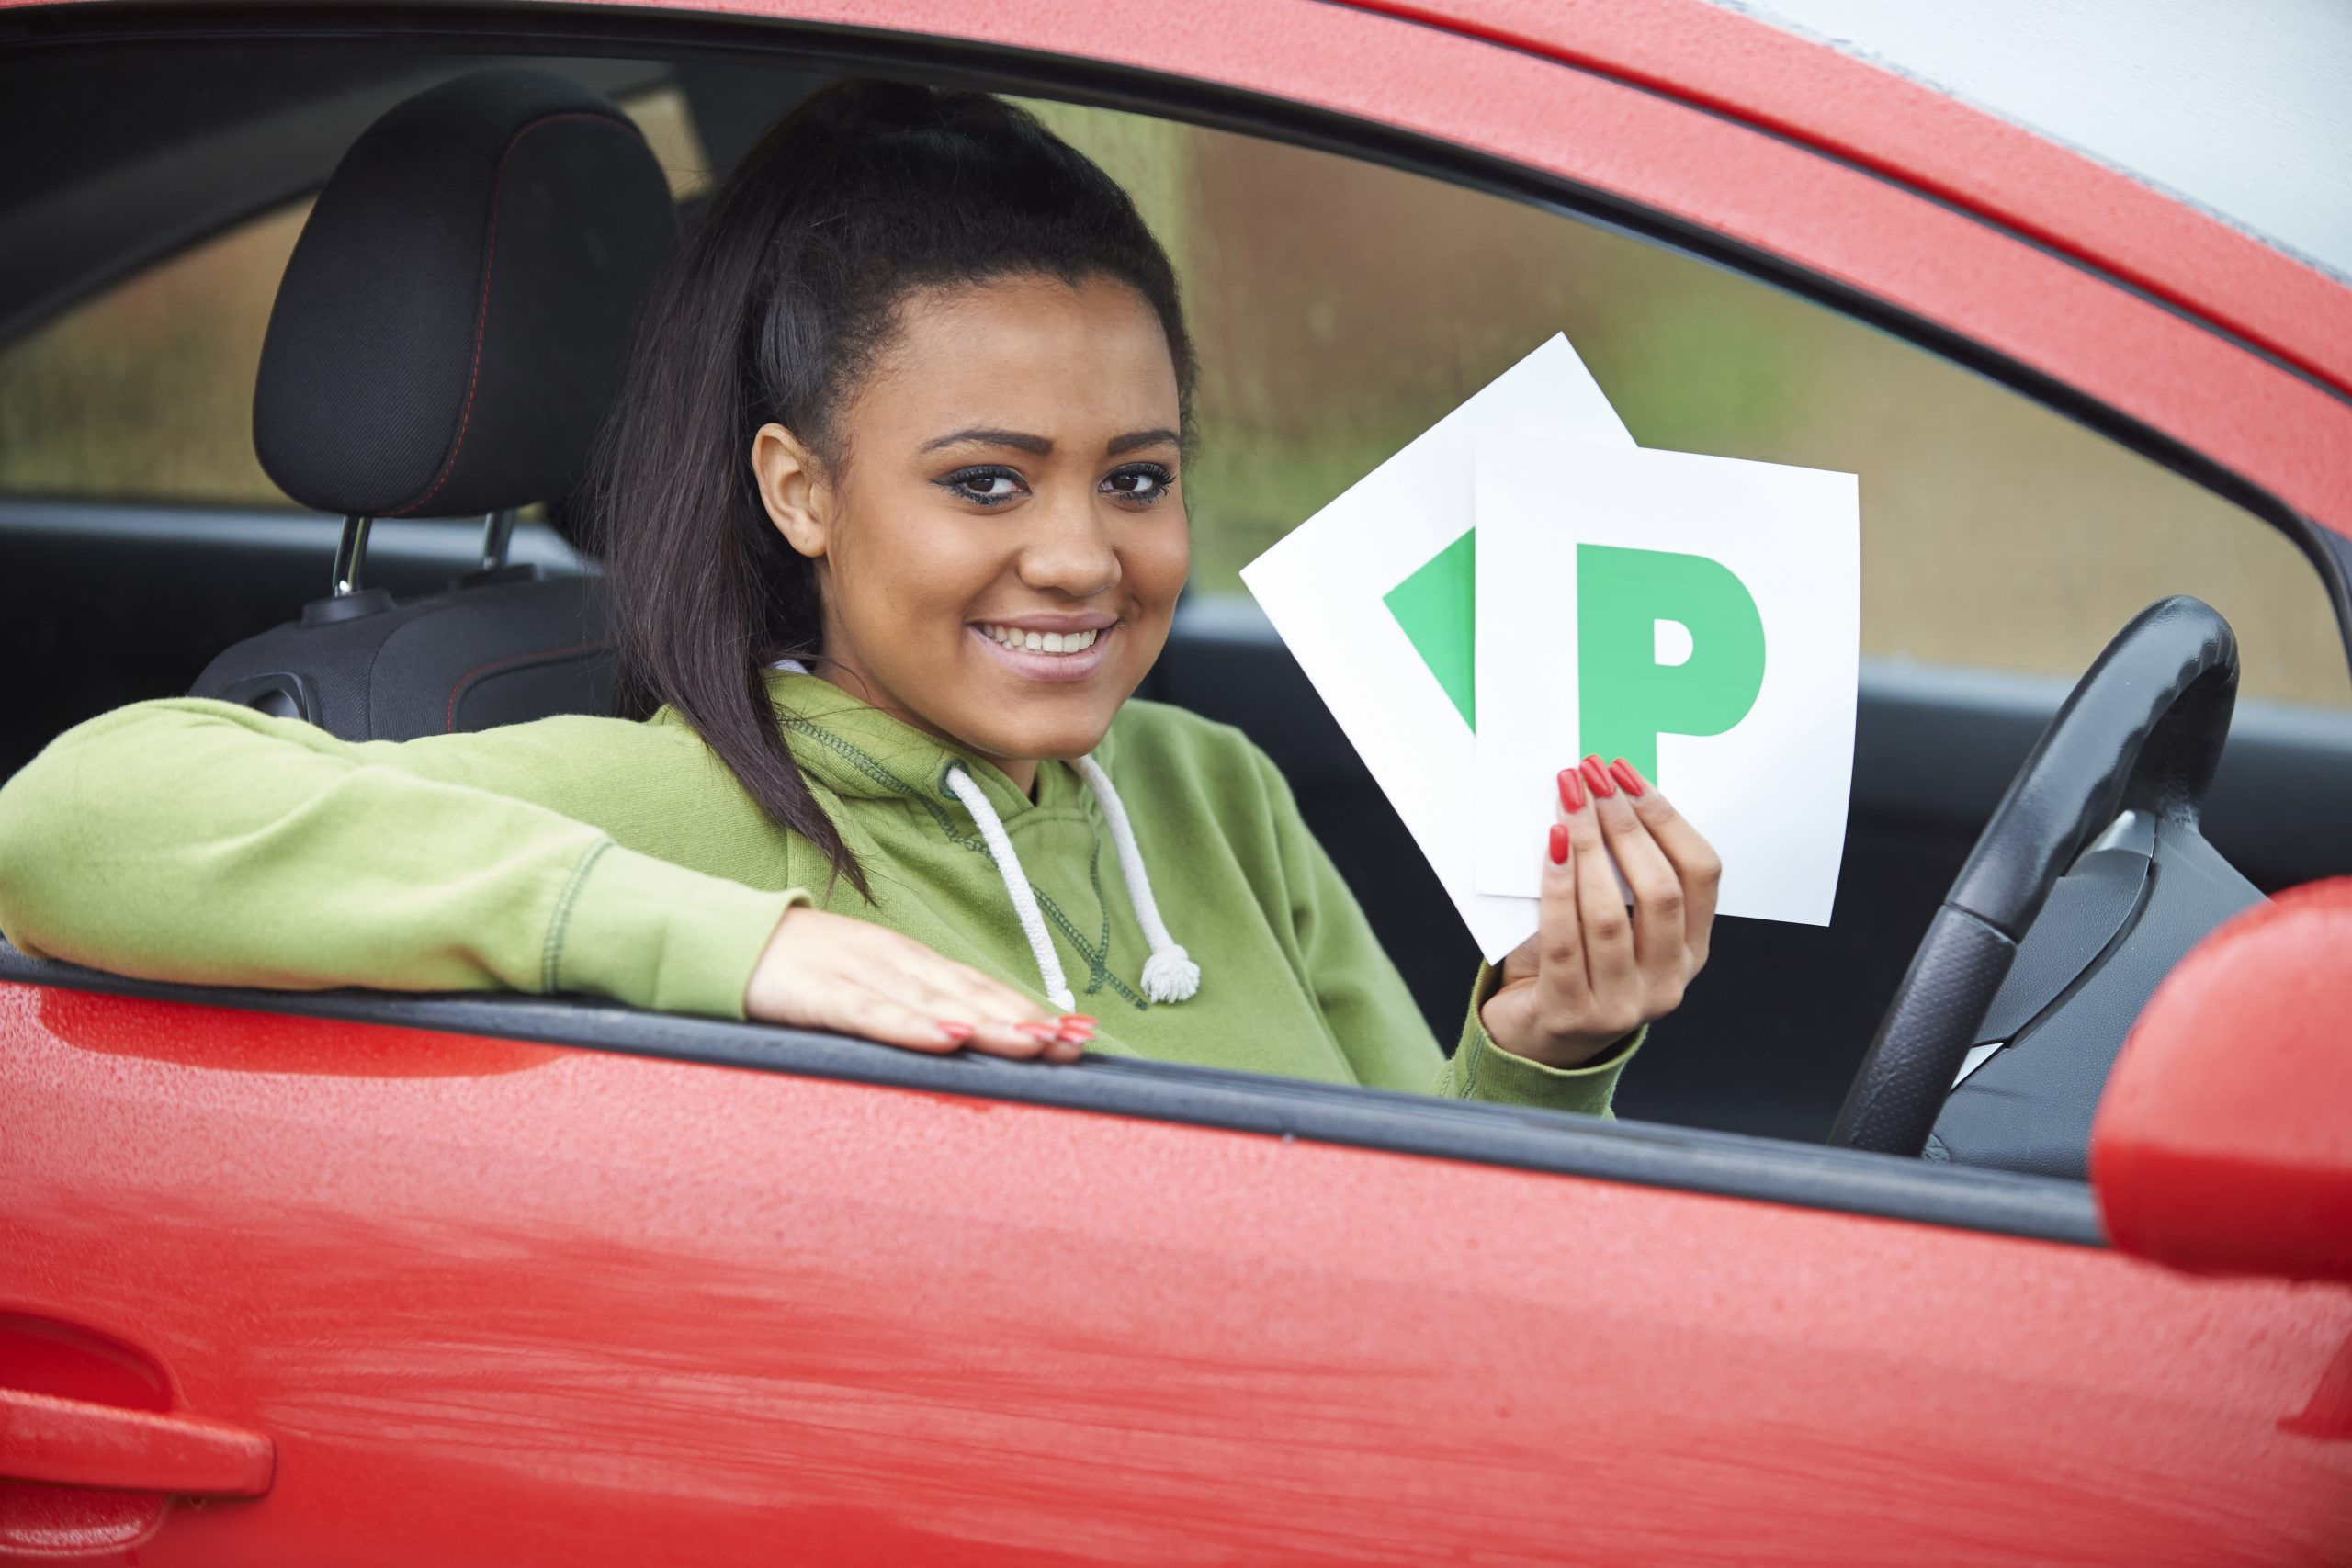 female driver passed her test